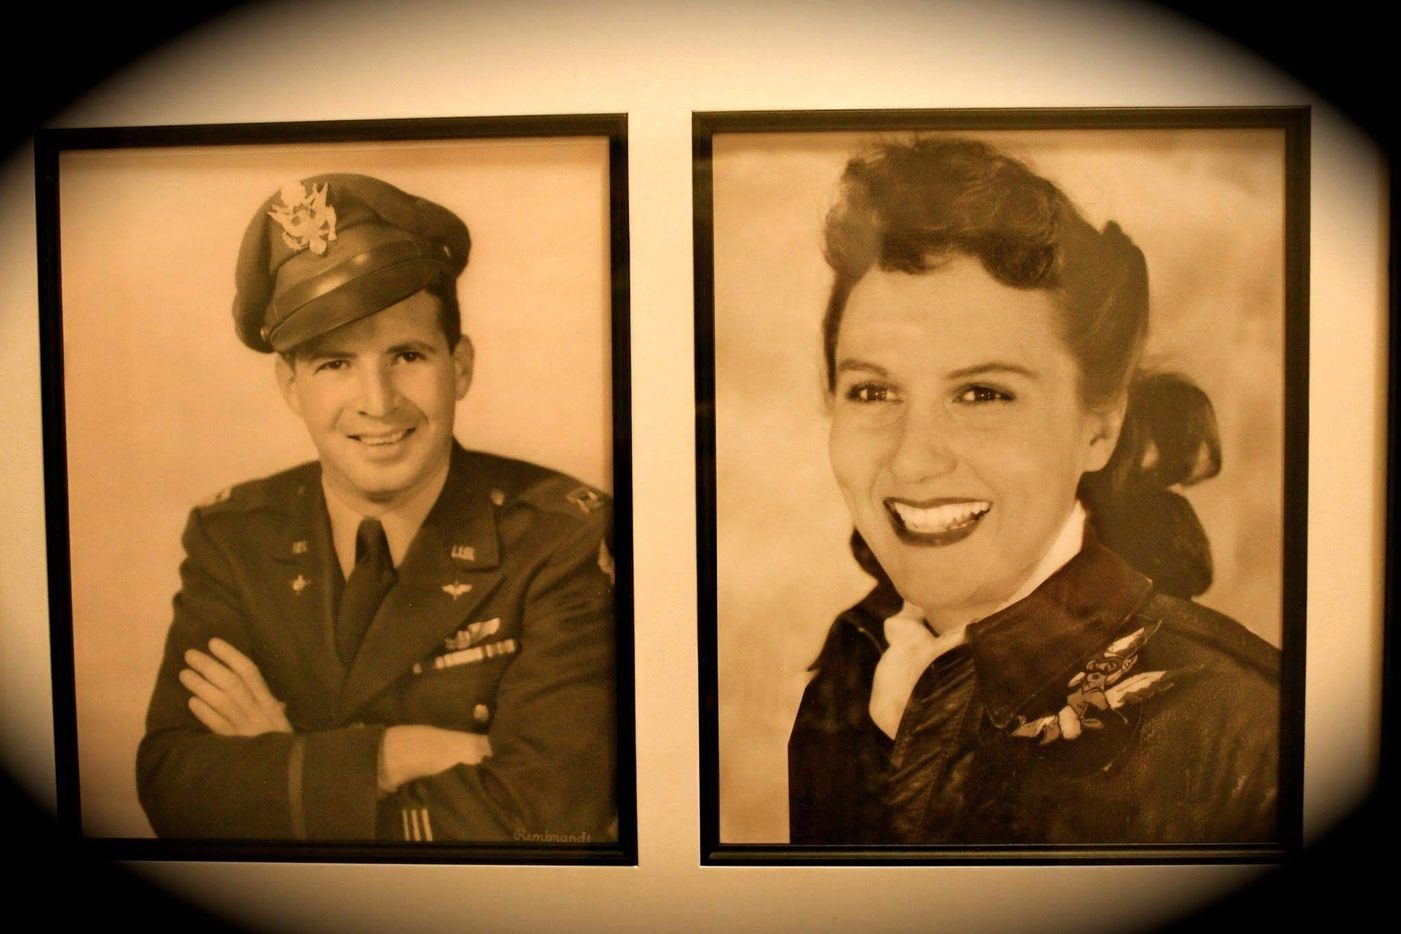 """Muriel """"Mimi"""" Lindstrom Segall, left, and her husband Capt. B. Segall, Jr., were both pilots during World War II. Segall's son, Lindy, will be testifying before the Texas State Board of Education on Tuesday, Nov. 13 in the hopes of reversing the board's decision to cut the WASP from the public school social studies curriculum."""